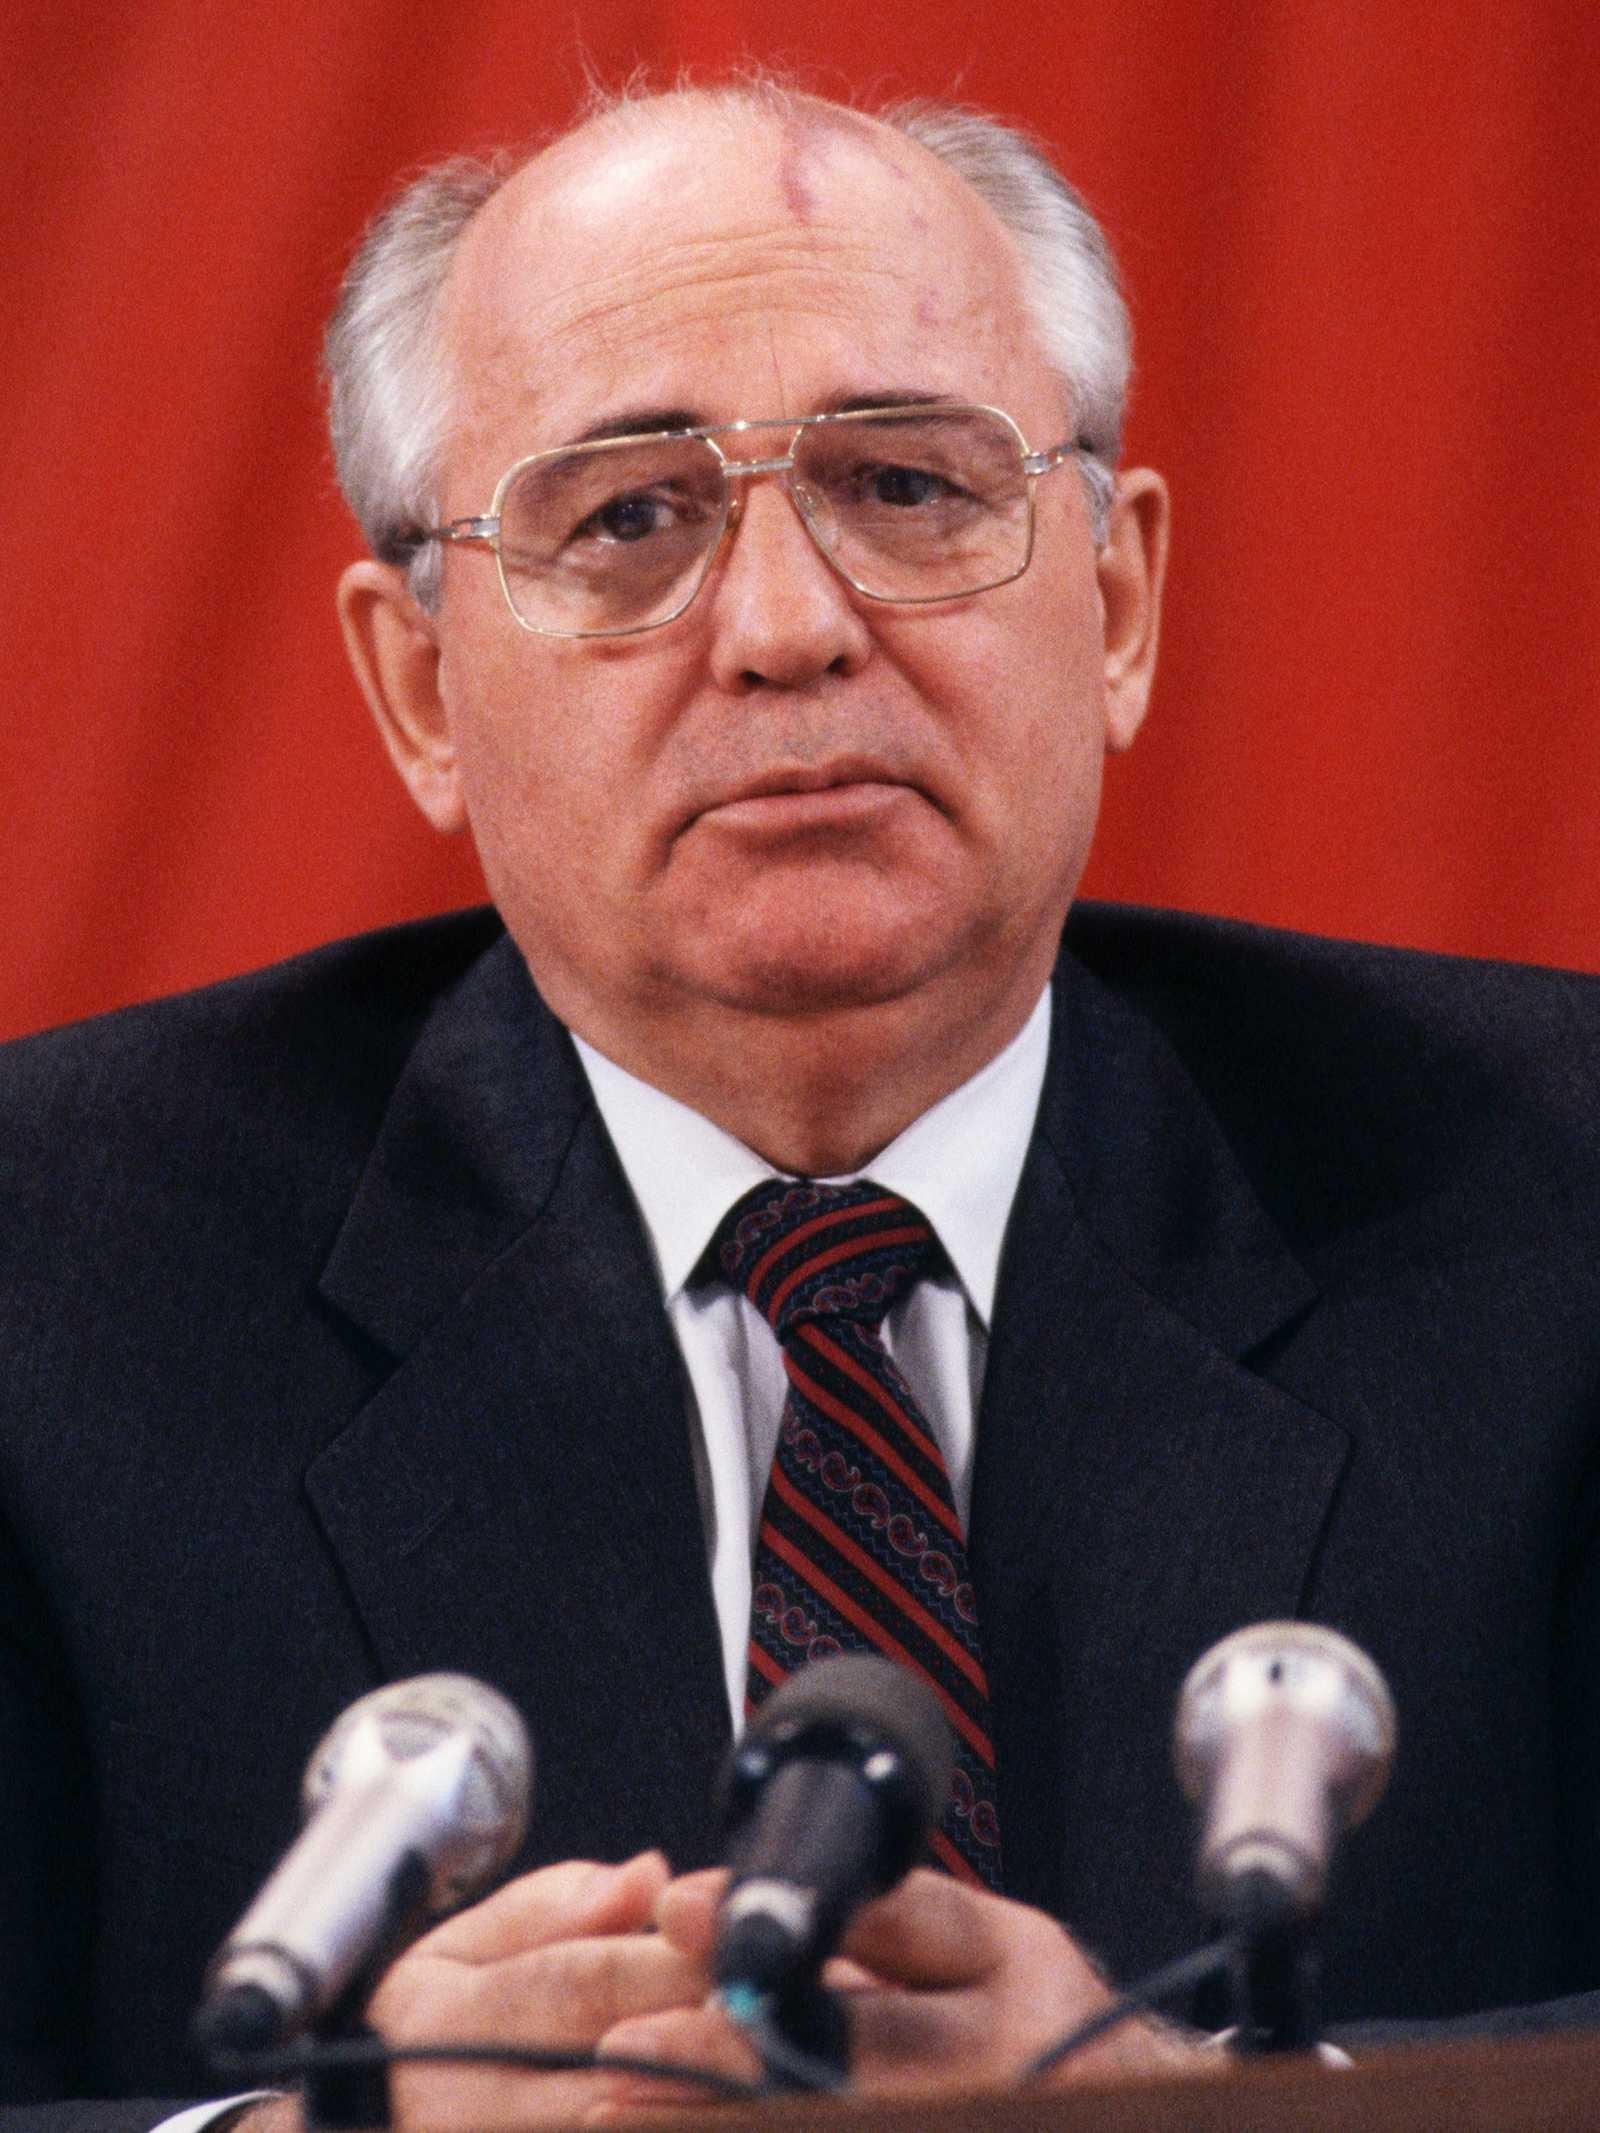 was mikhail gorbachev responsible for the How can the answer be improved.